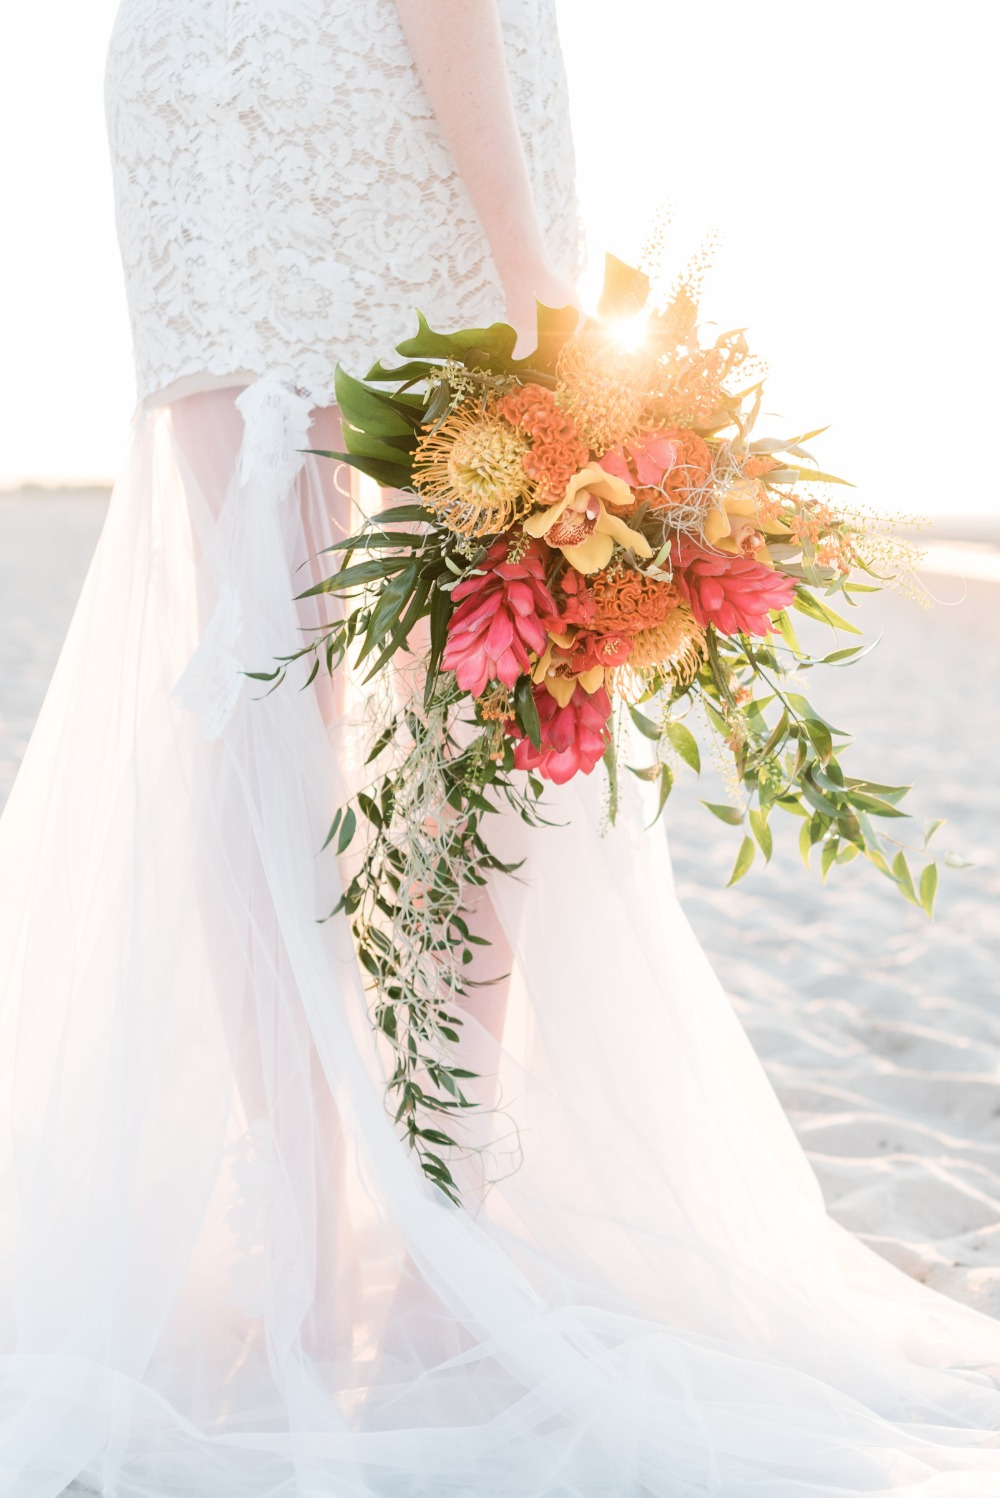 Wedding Gift Ideas Germany : Blog - Tropical Beach Wedding Ideas from Germany